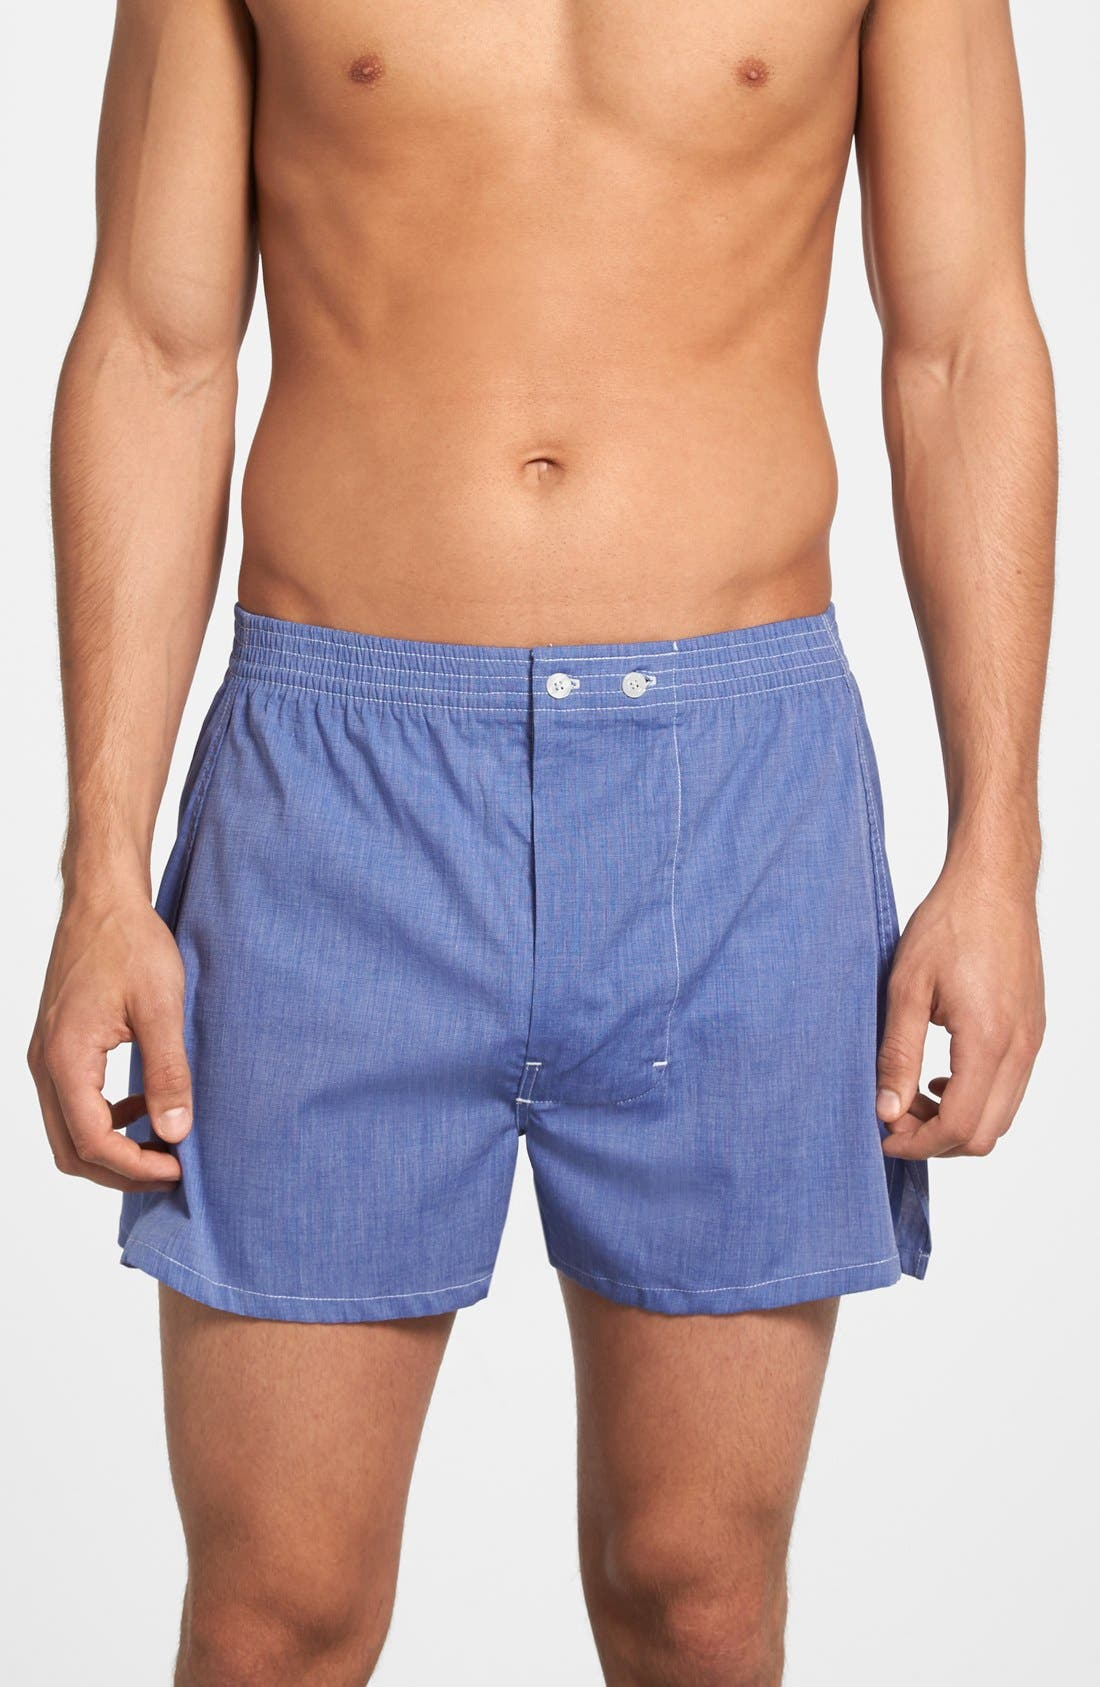 Nordstrom Men's Shop 3-Pack Classic Fit Boxers